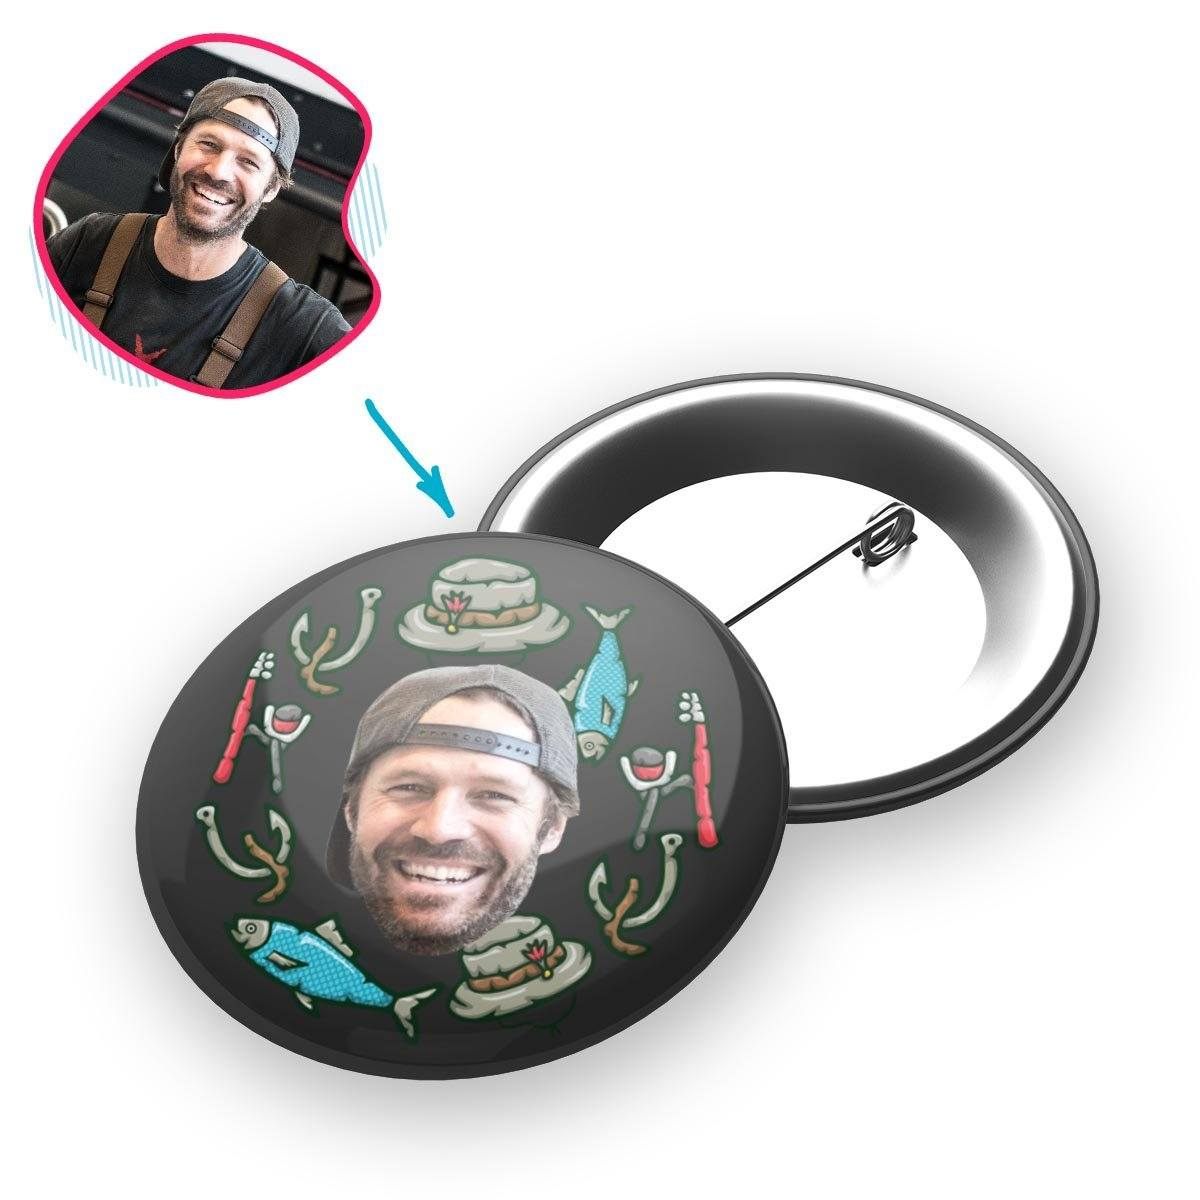 Dark Fishing personalized pin with photo of face printed on it